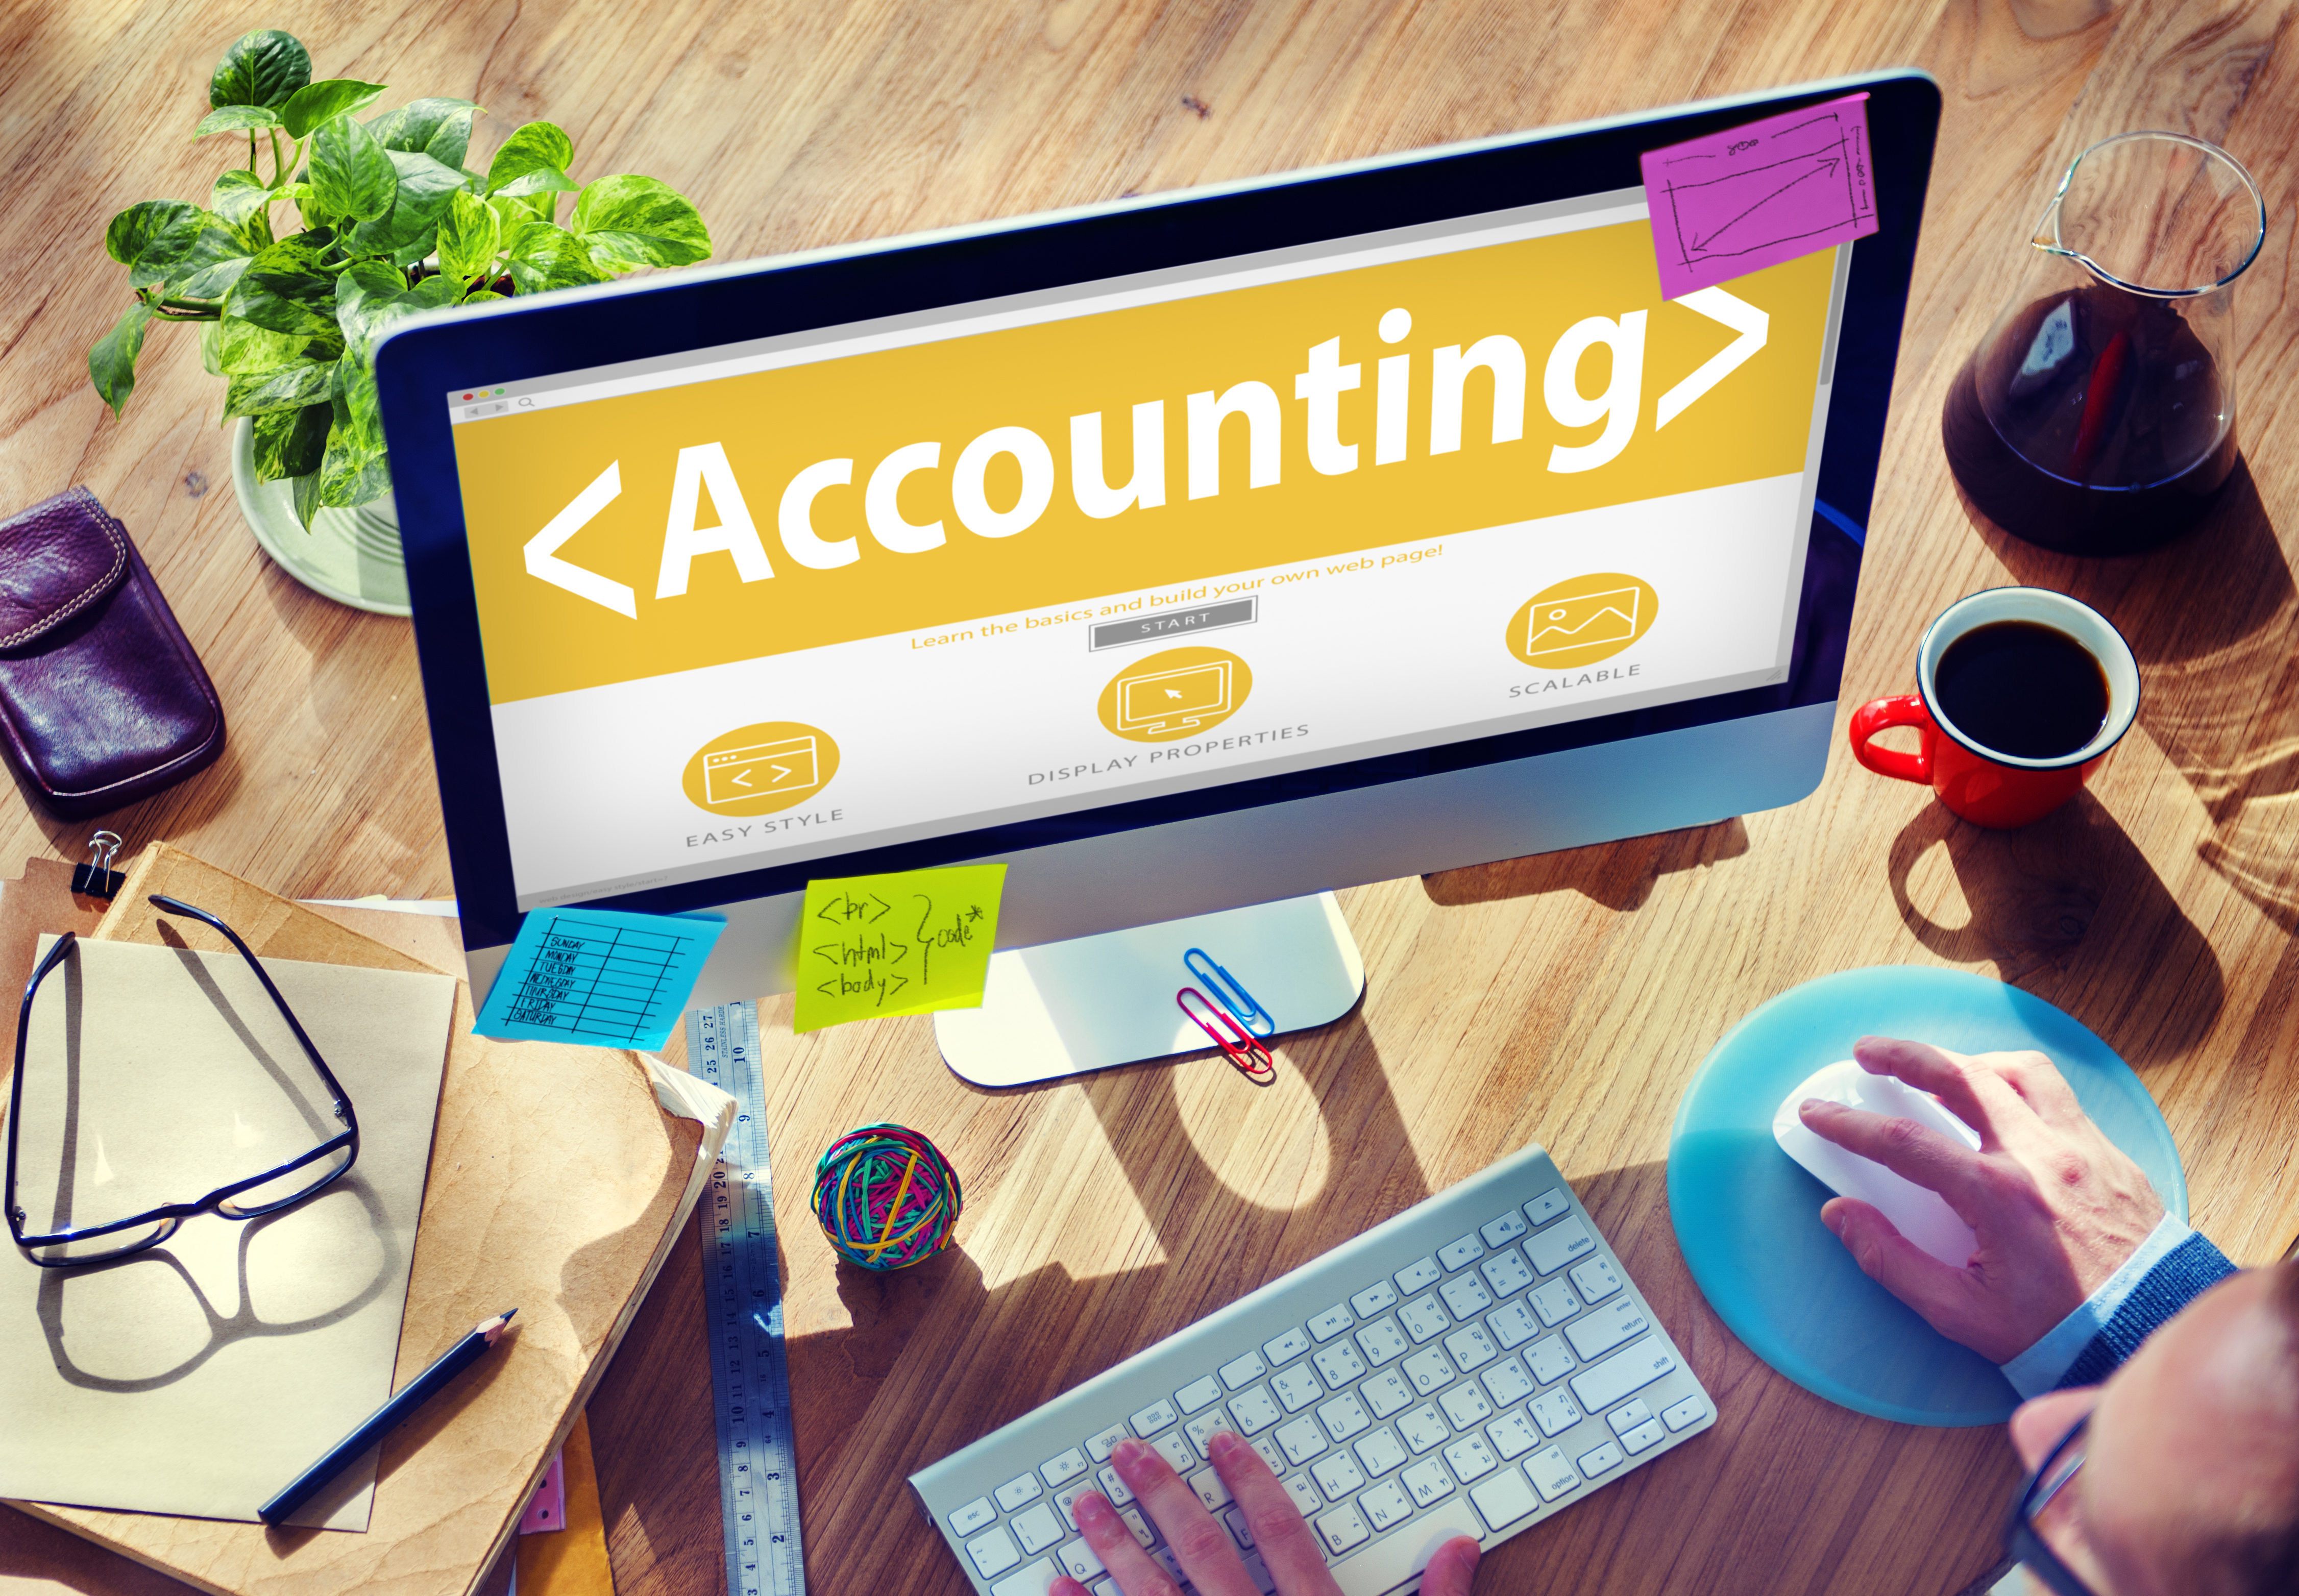 Computer screen with the word accounting appearing on screen with keyboard.